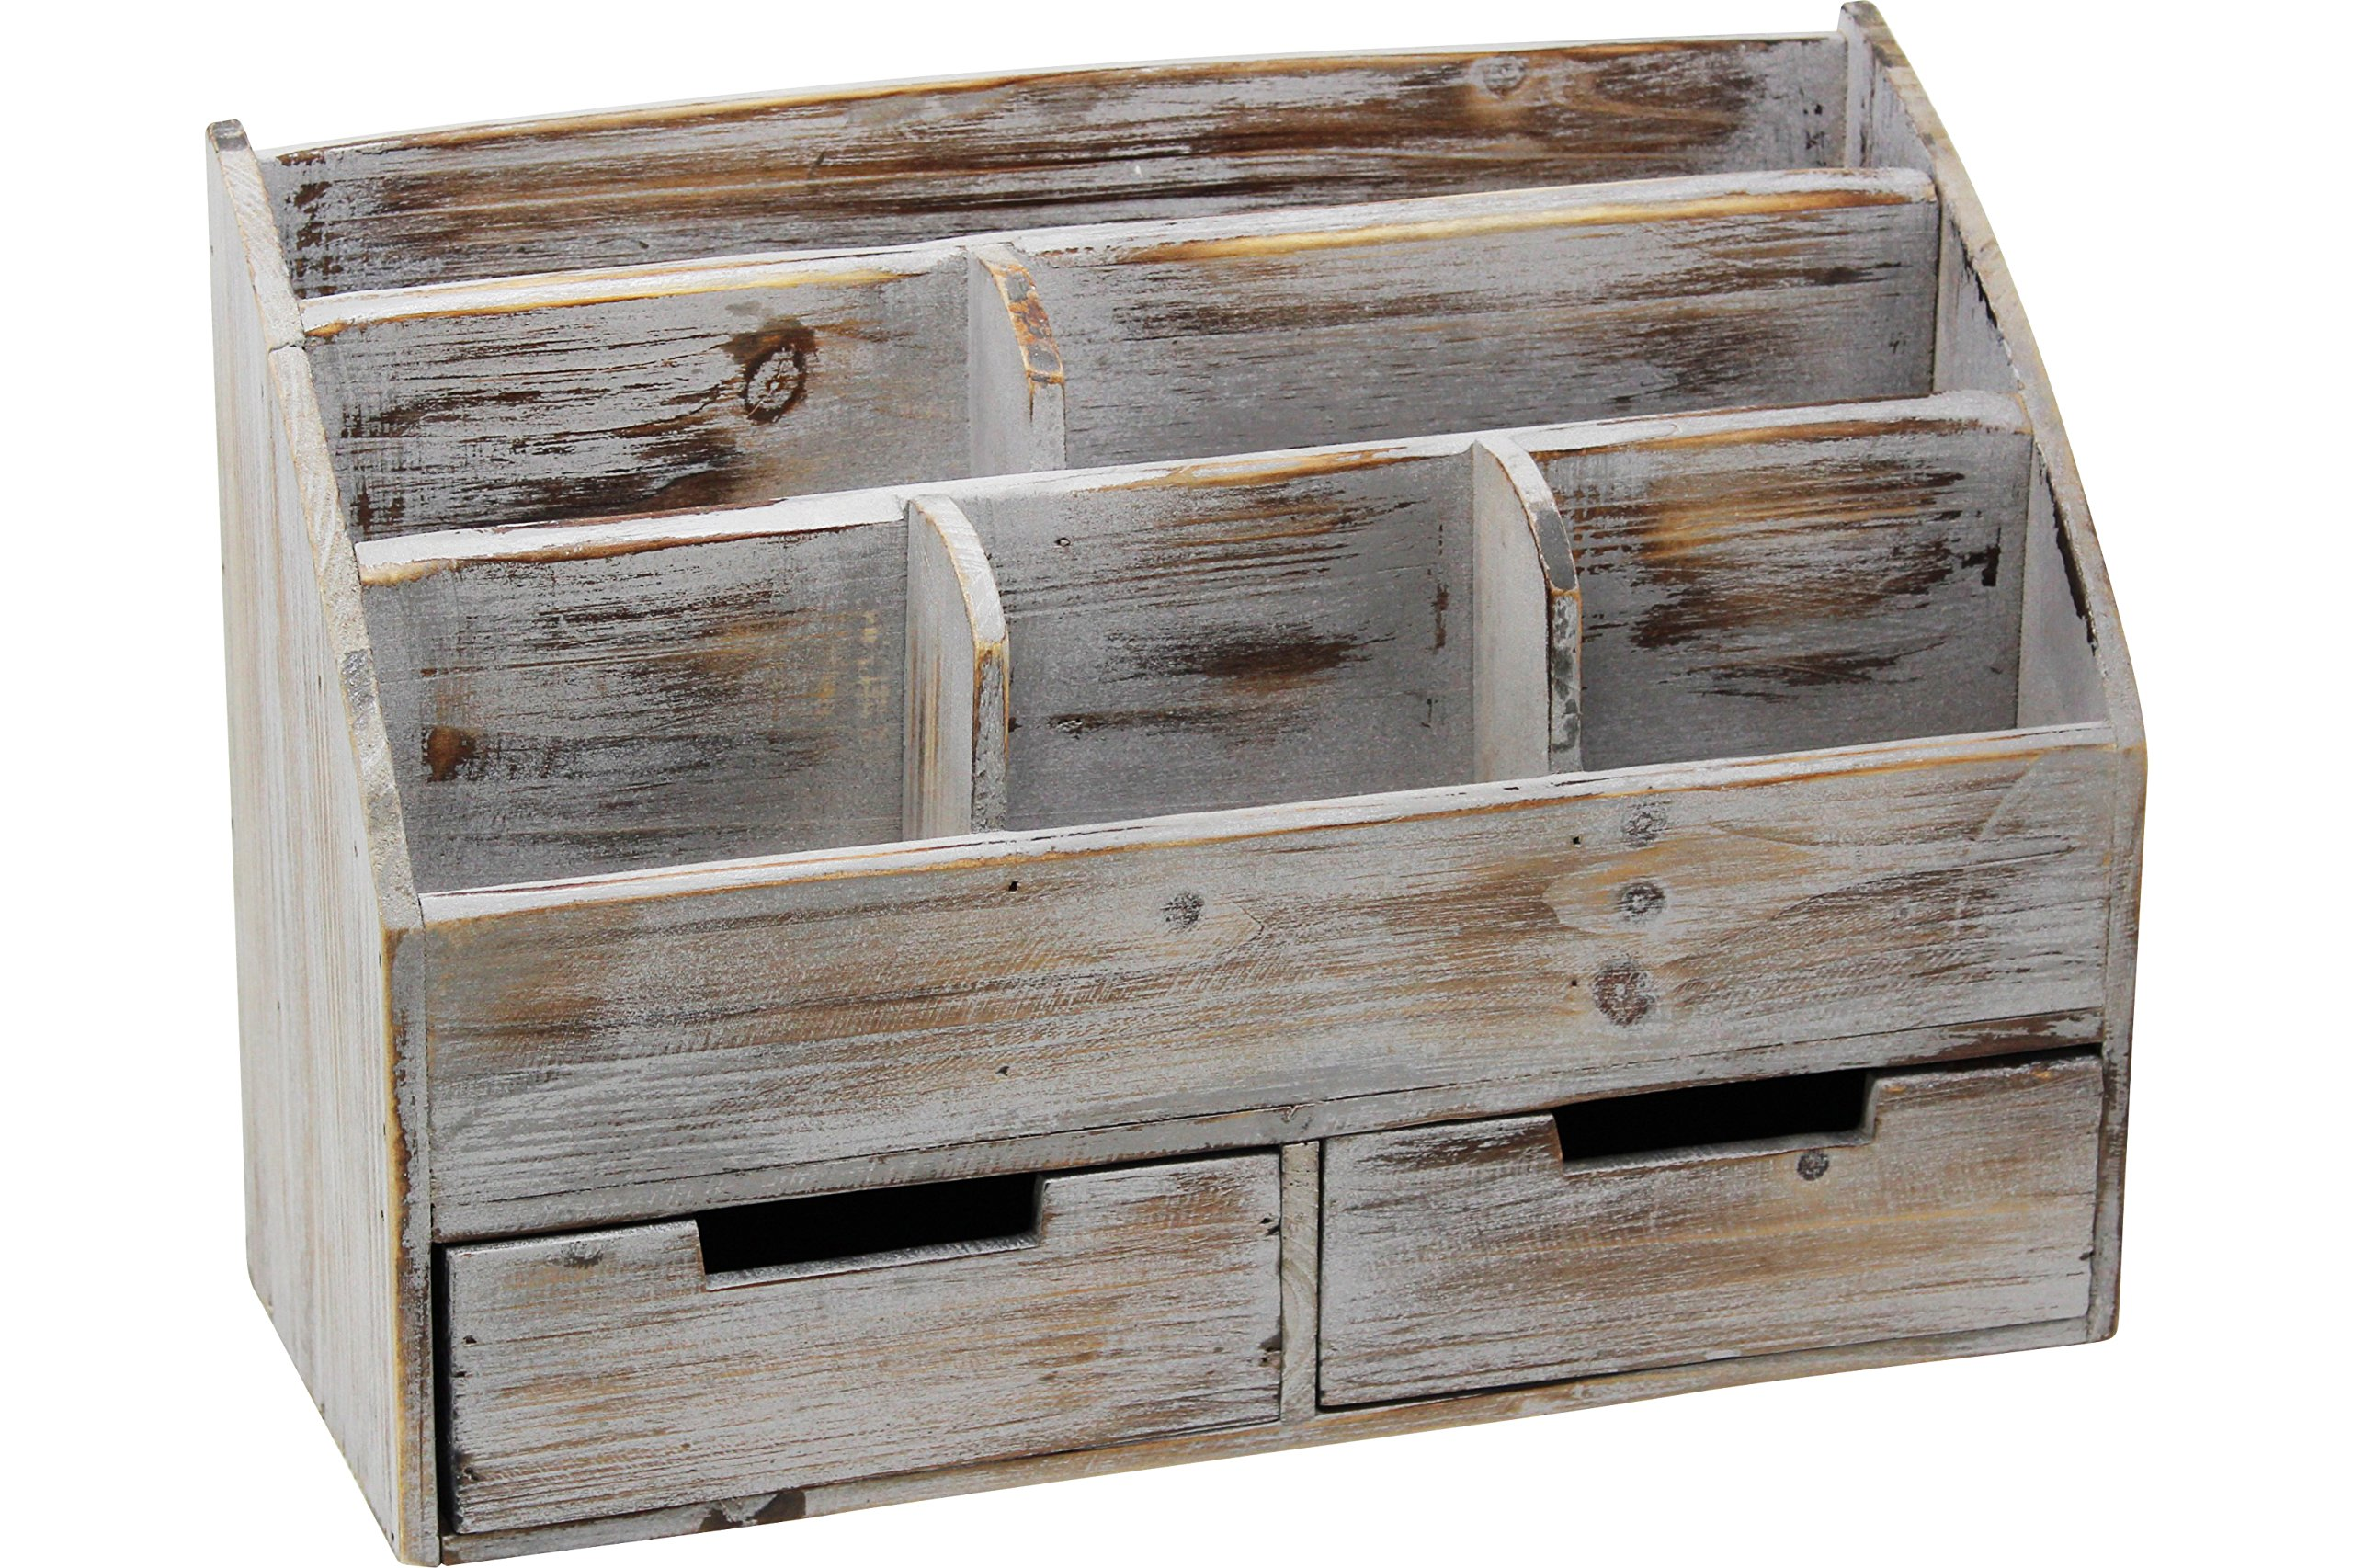 Details about Vintage Rustic Wooden Office Desk Organizer Mail Rack for  Desktop, Tabletop, or